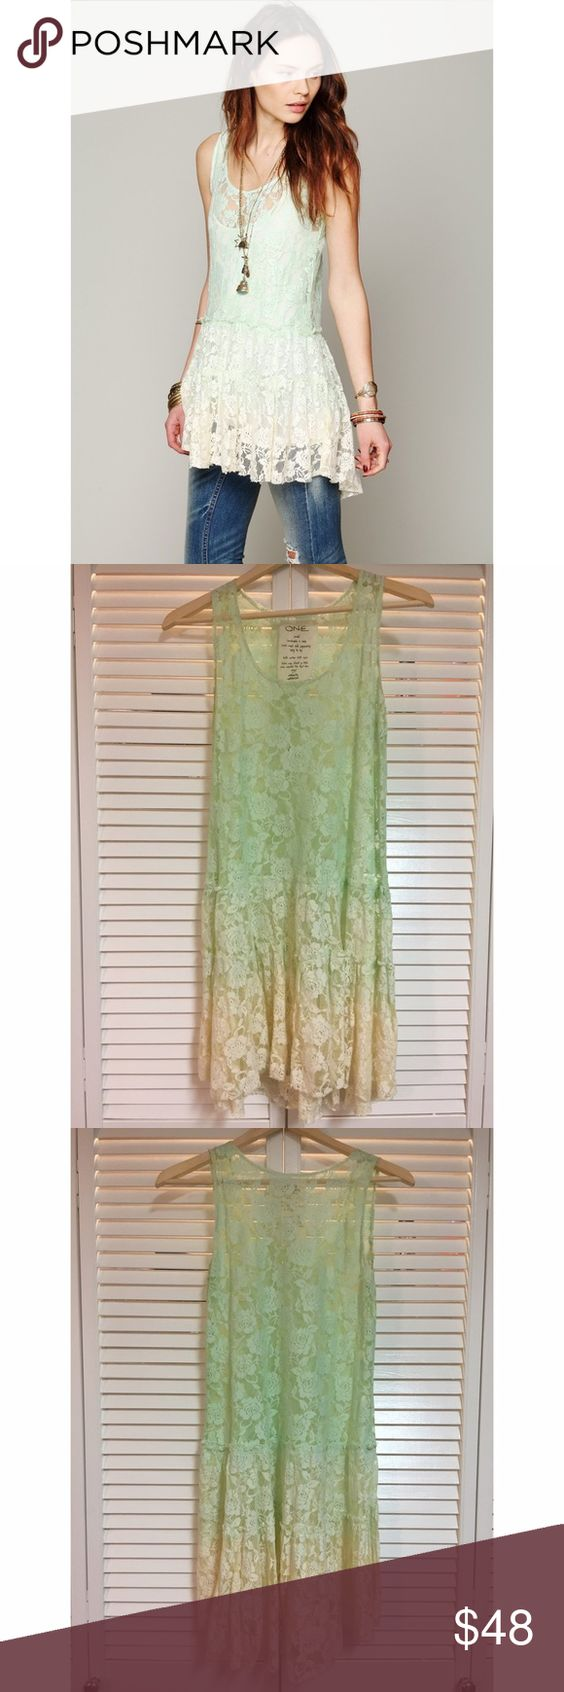 Free People Sundial FP One Dip Dye Emily Slip Handmade Free People dip-dyed lace slip dress. Ombré color, mint green to ivory. Style with a seamless white slip or with a cami and jeans. Slight discoloration under arms along seam Free People Dresses Mini